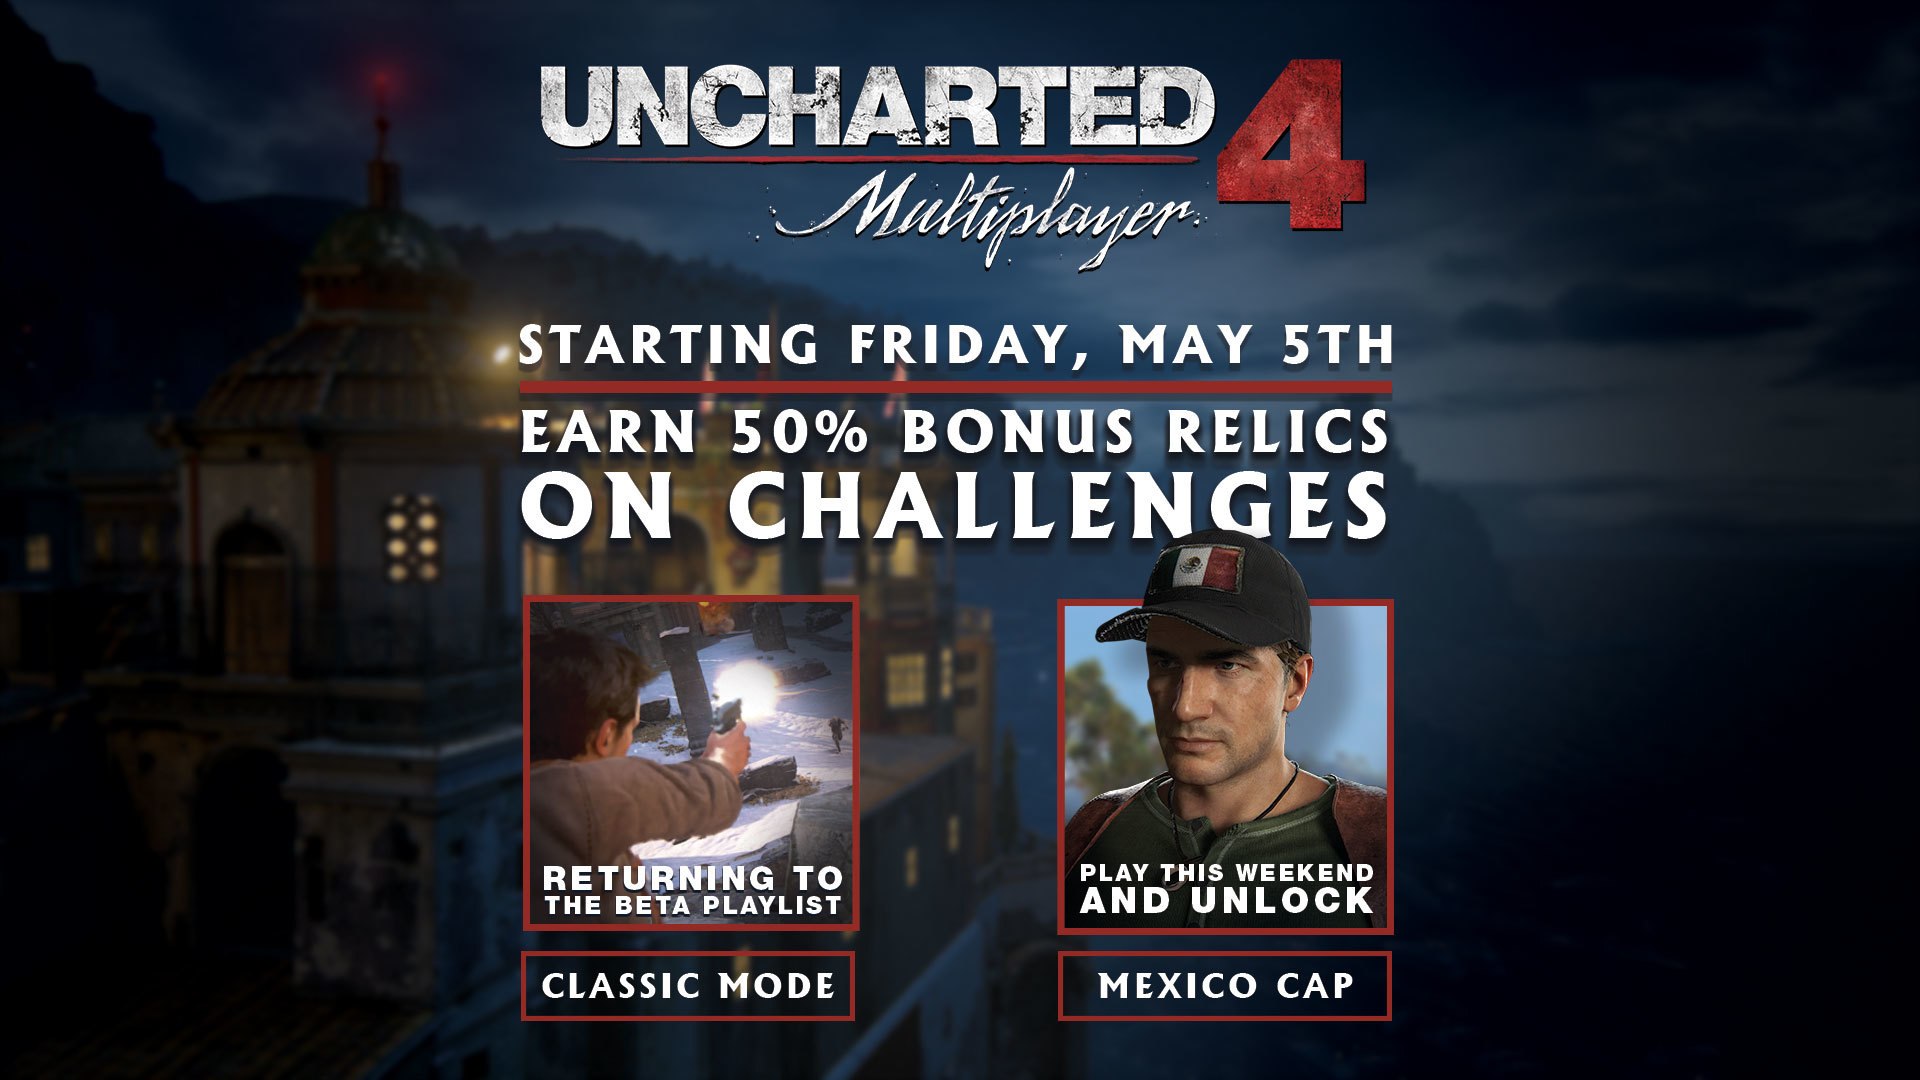 Uncharted 4 Multiplayer: Classic Mode Returns, Relic Bonus Weekend, and Free Hat Giveaway